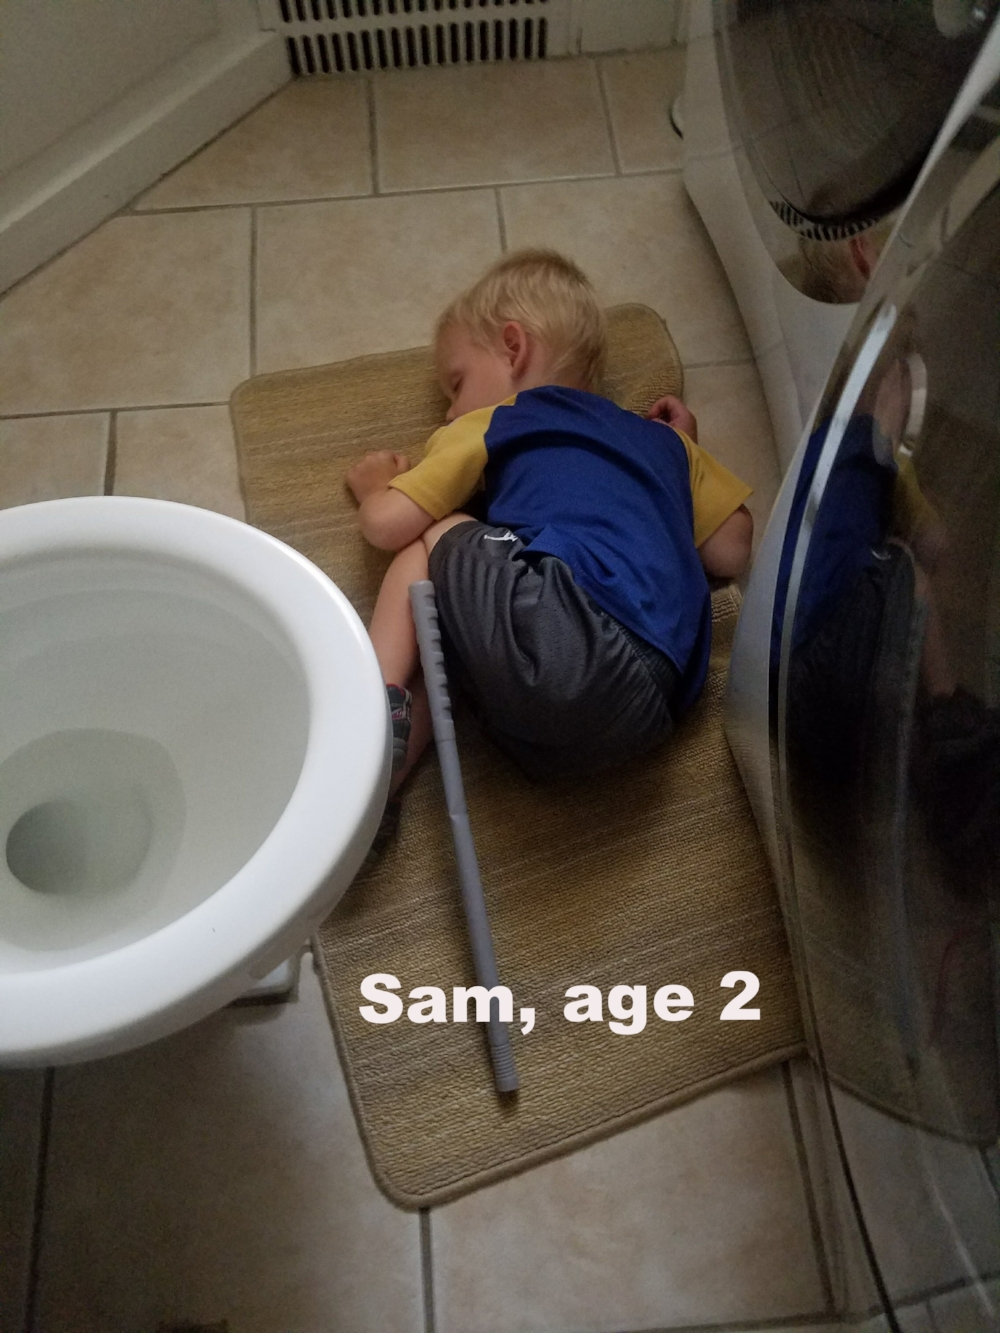 Here lies Sam, worn out after a potty training battle. See? Wouldn't it have been better for the poor little guy if this had been a springier, softer surface instead of this cold, tile floor? YES!